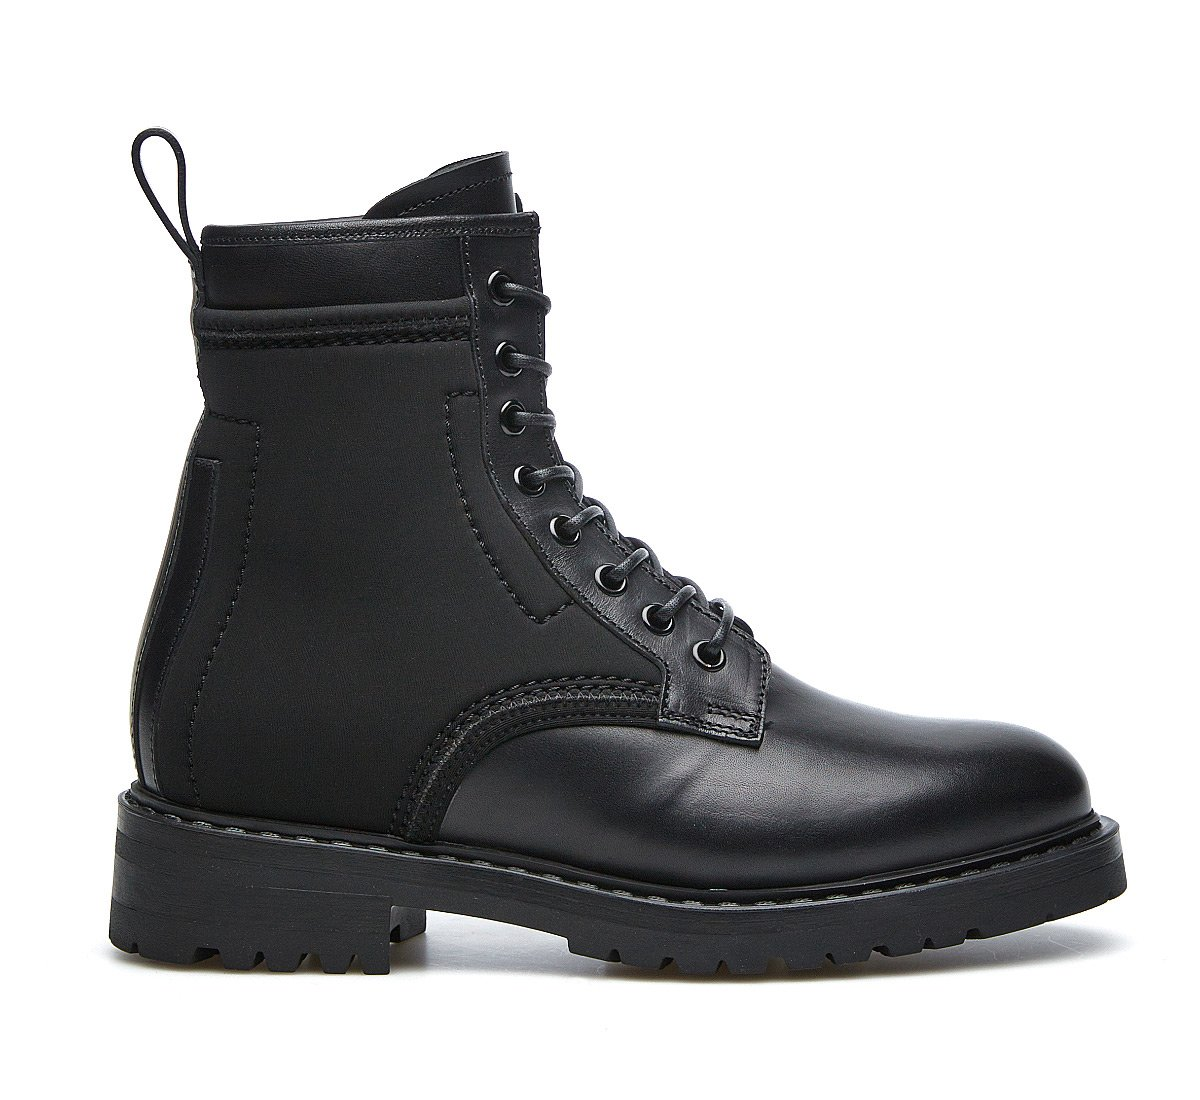 Barracuda total black combat boots in calf leather